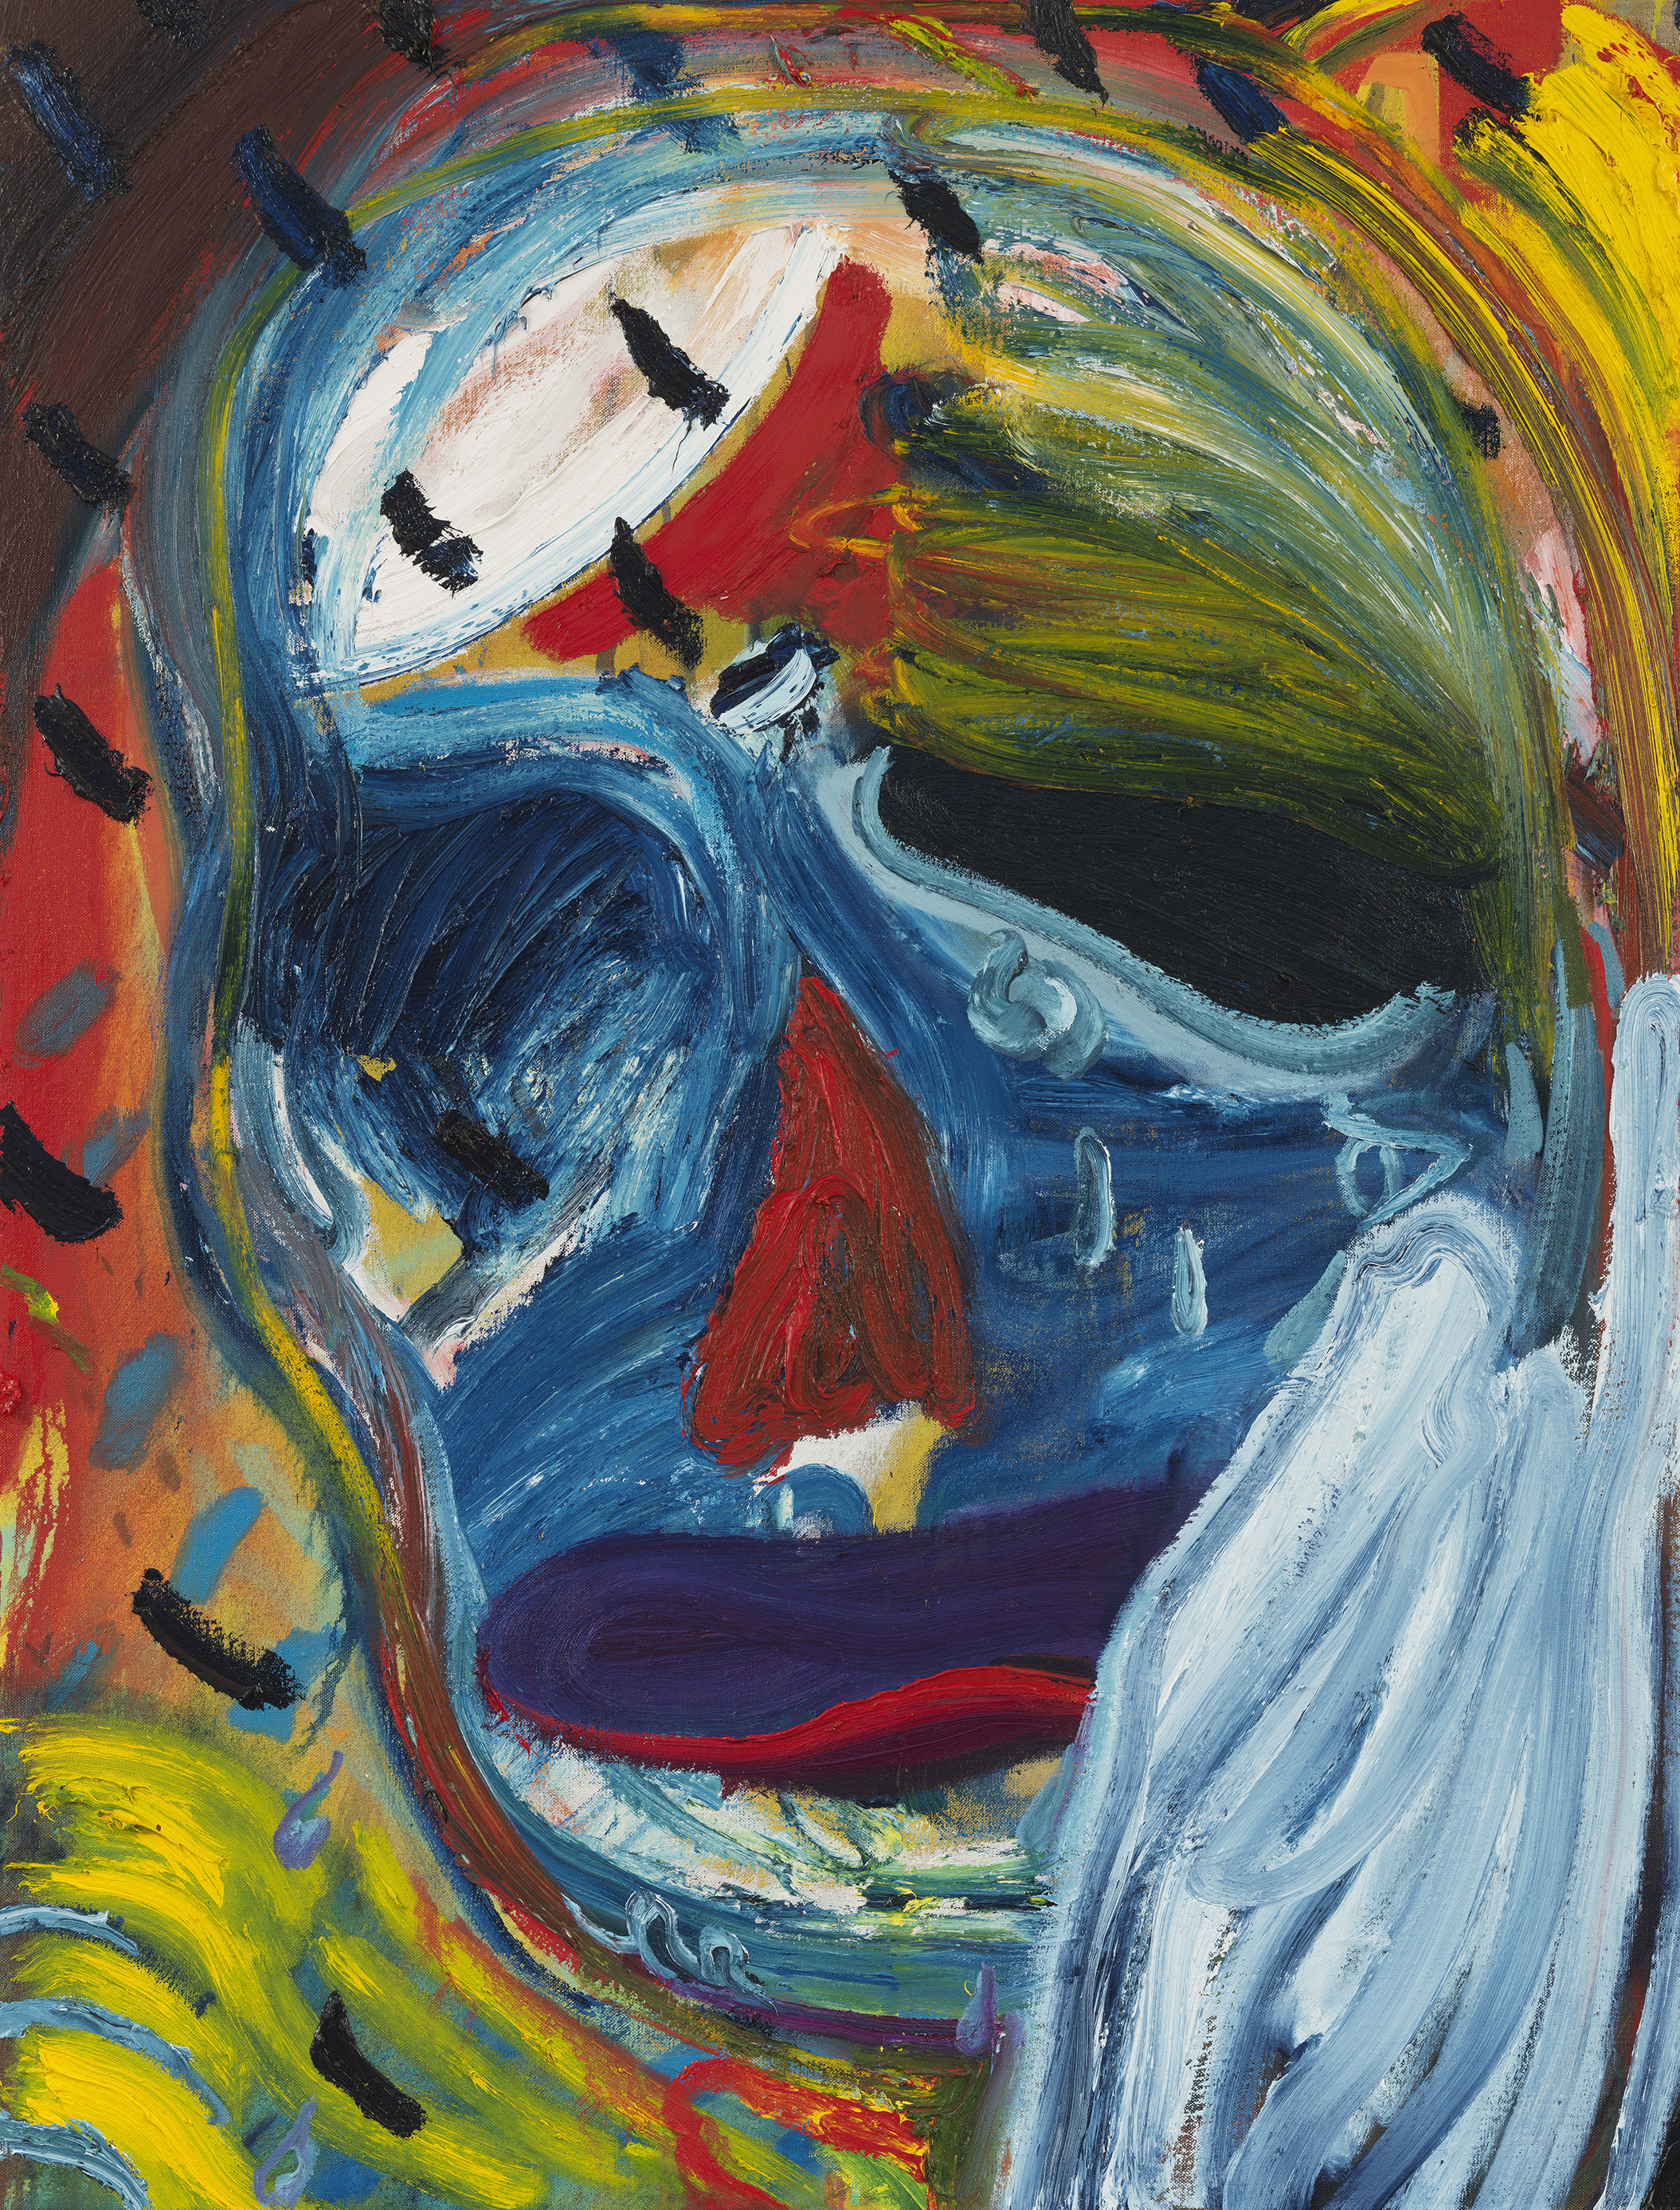 Weeping Ghoul, 2021 Oil on linen 40 x 30 1/2 x 1 3/8 in 101.6 x 77.5 x 3.5 cm © Spencer Sweeney Photo: Robert McKeever Courtesy Gagosian